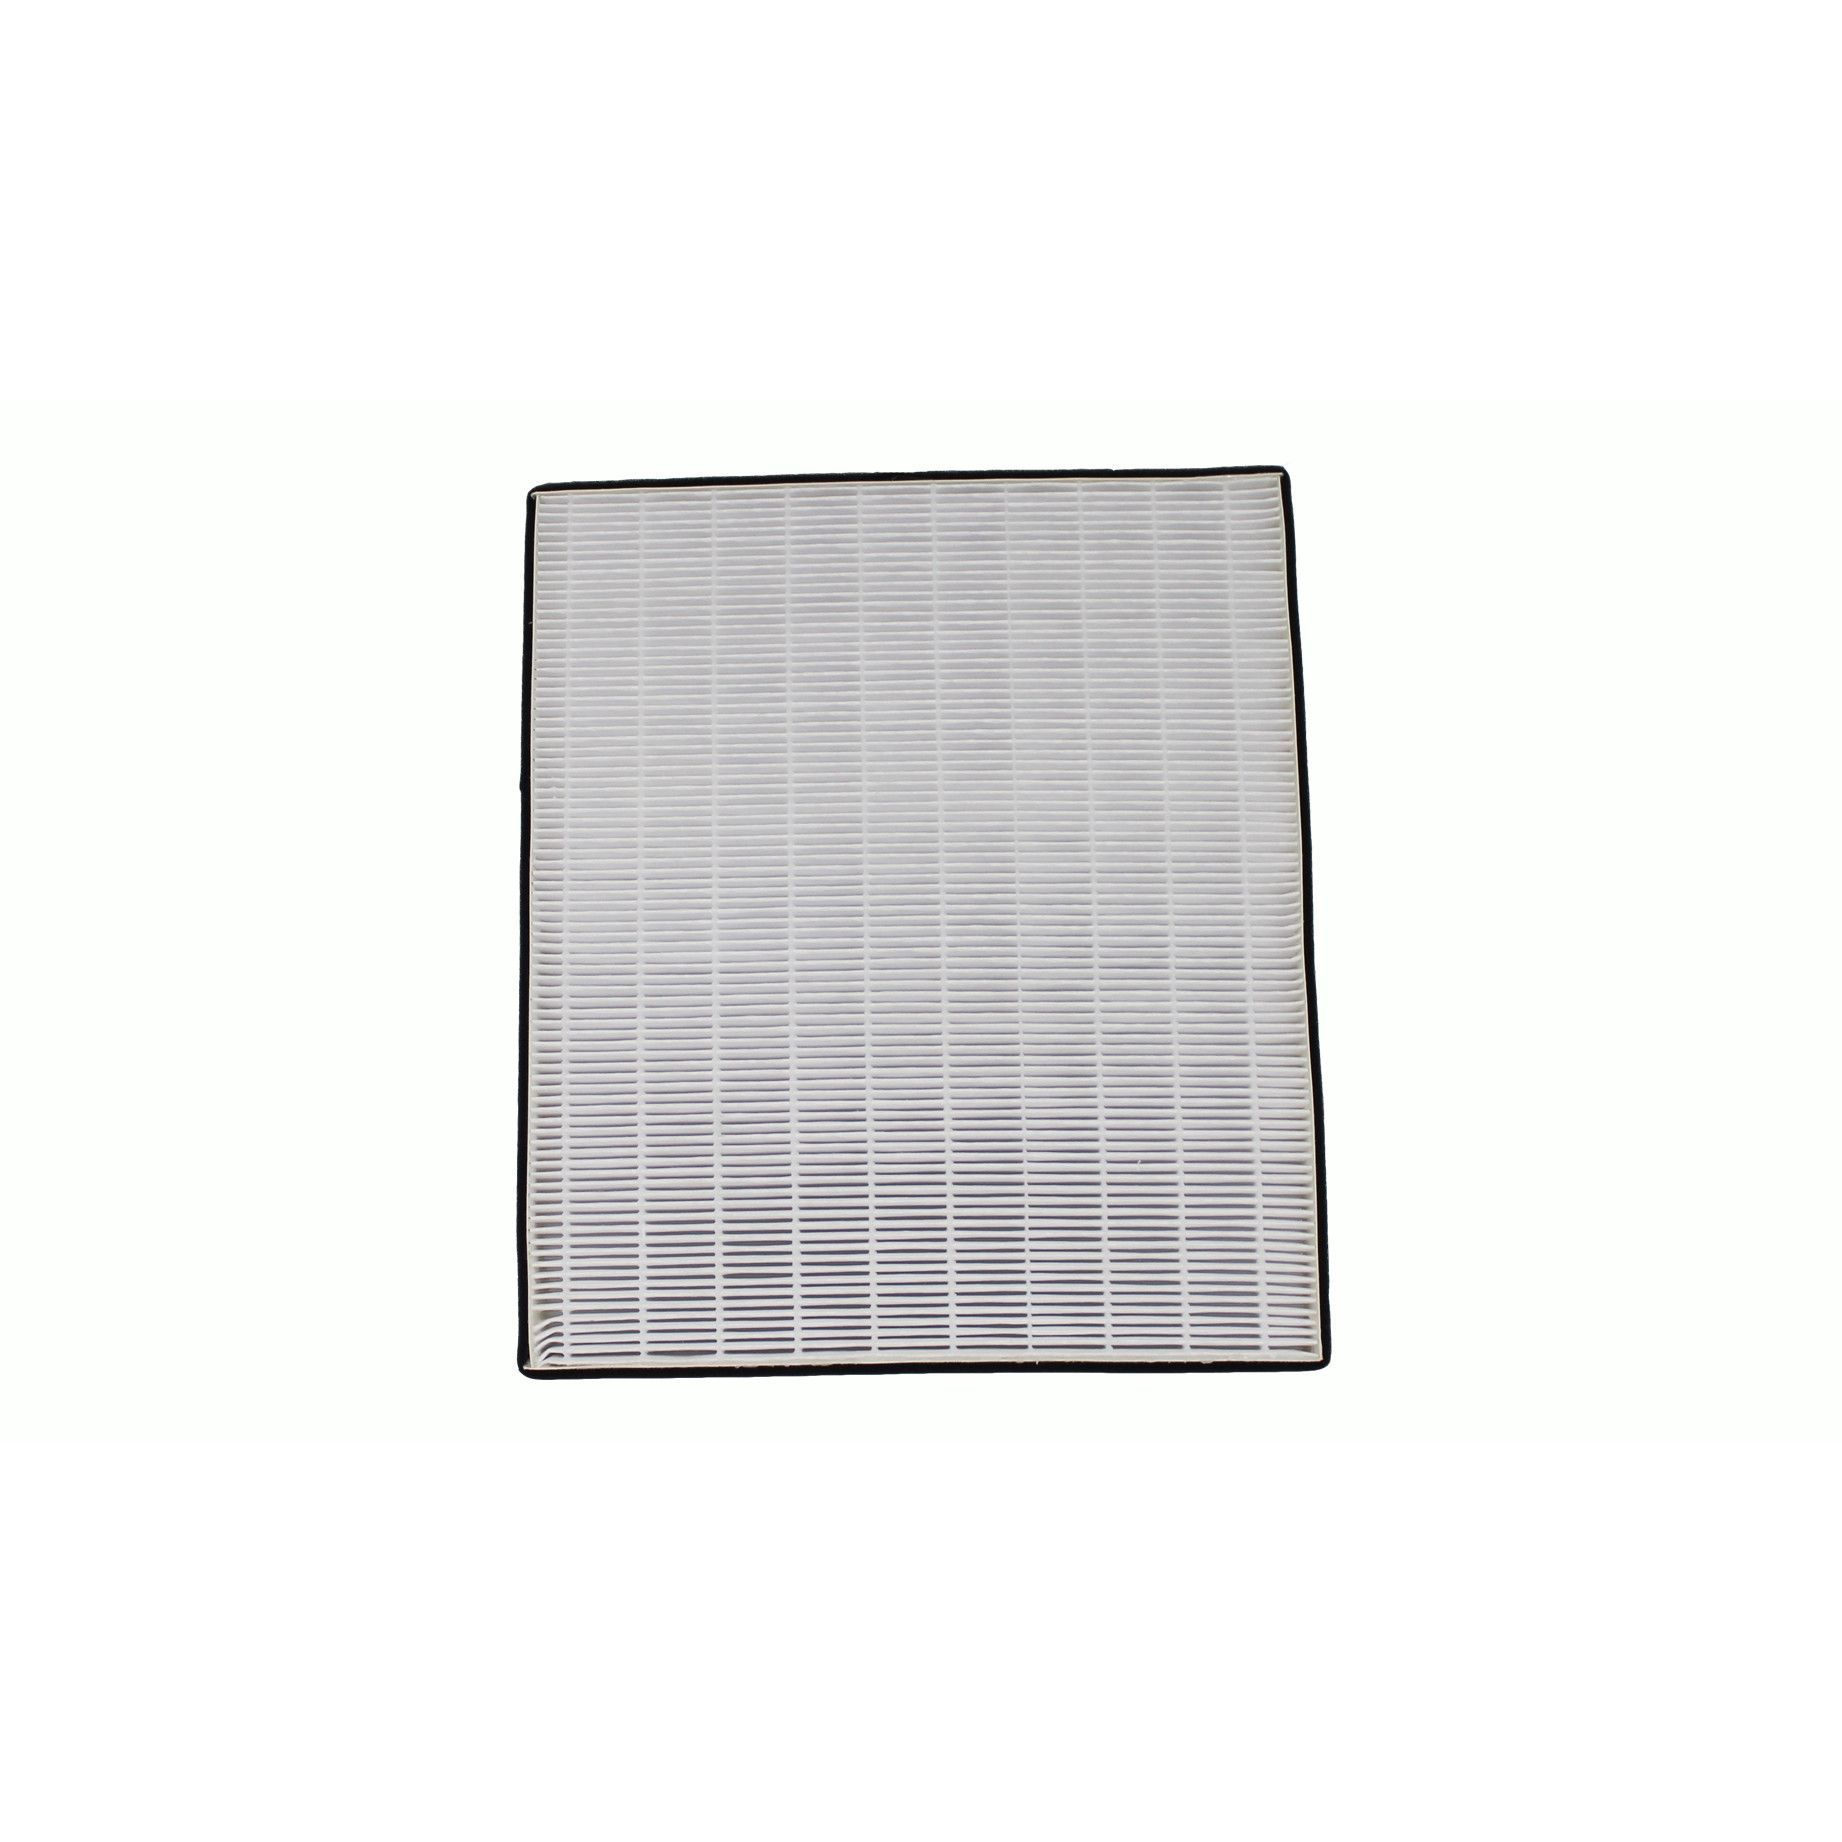 Replacement HEPA filter for Vornado Air Purifiers, Part No